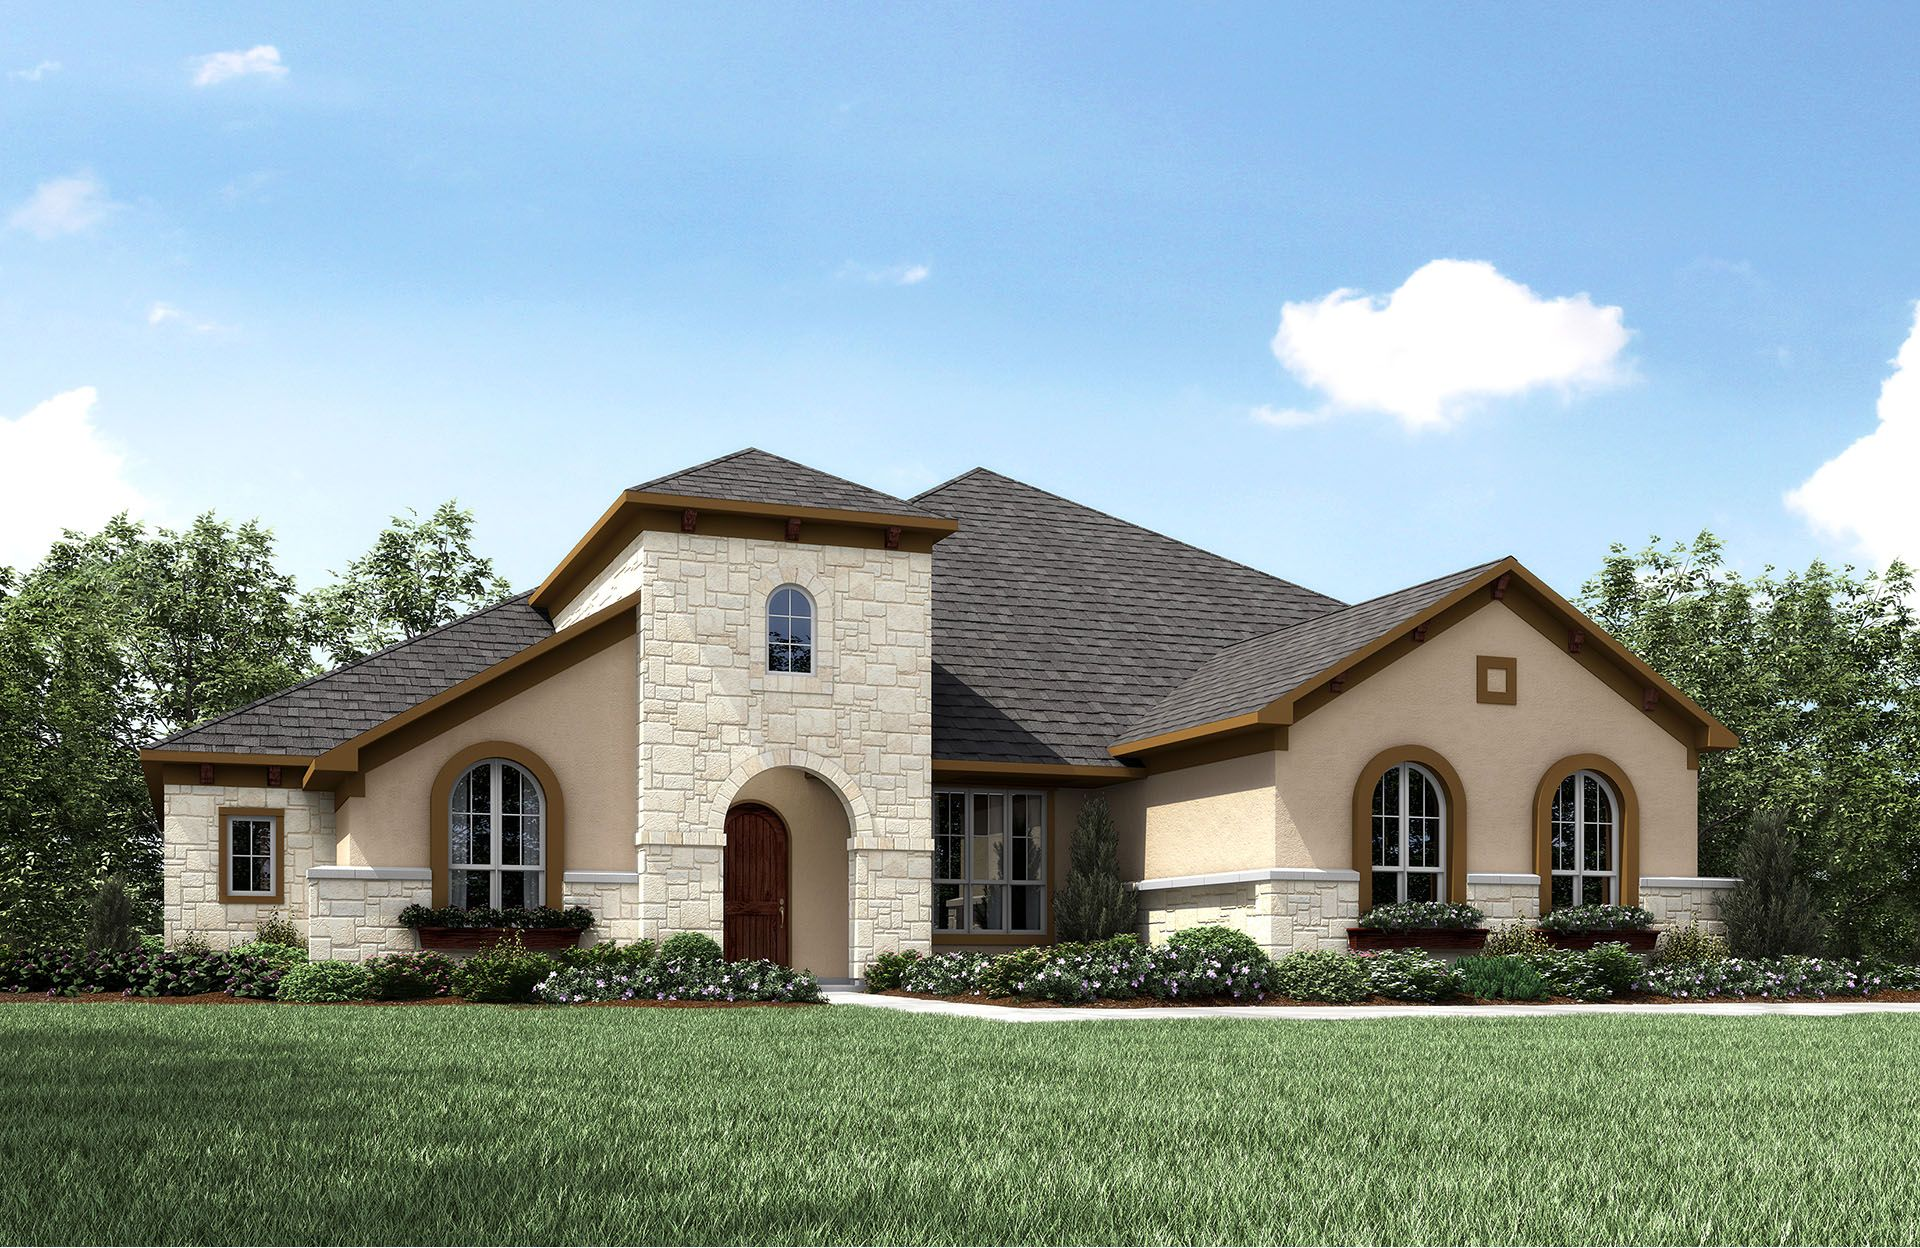 Single Family for Active at Daventry Ii 2305 High Lonesome Leander, Texas 78641 United States